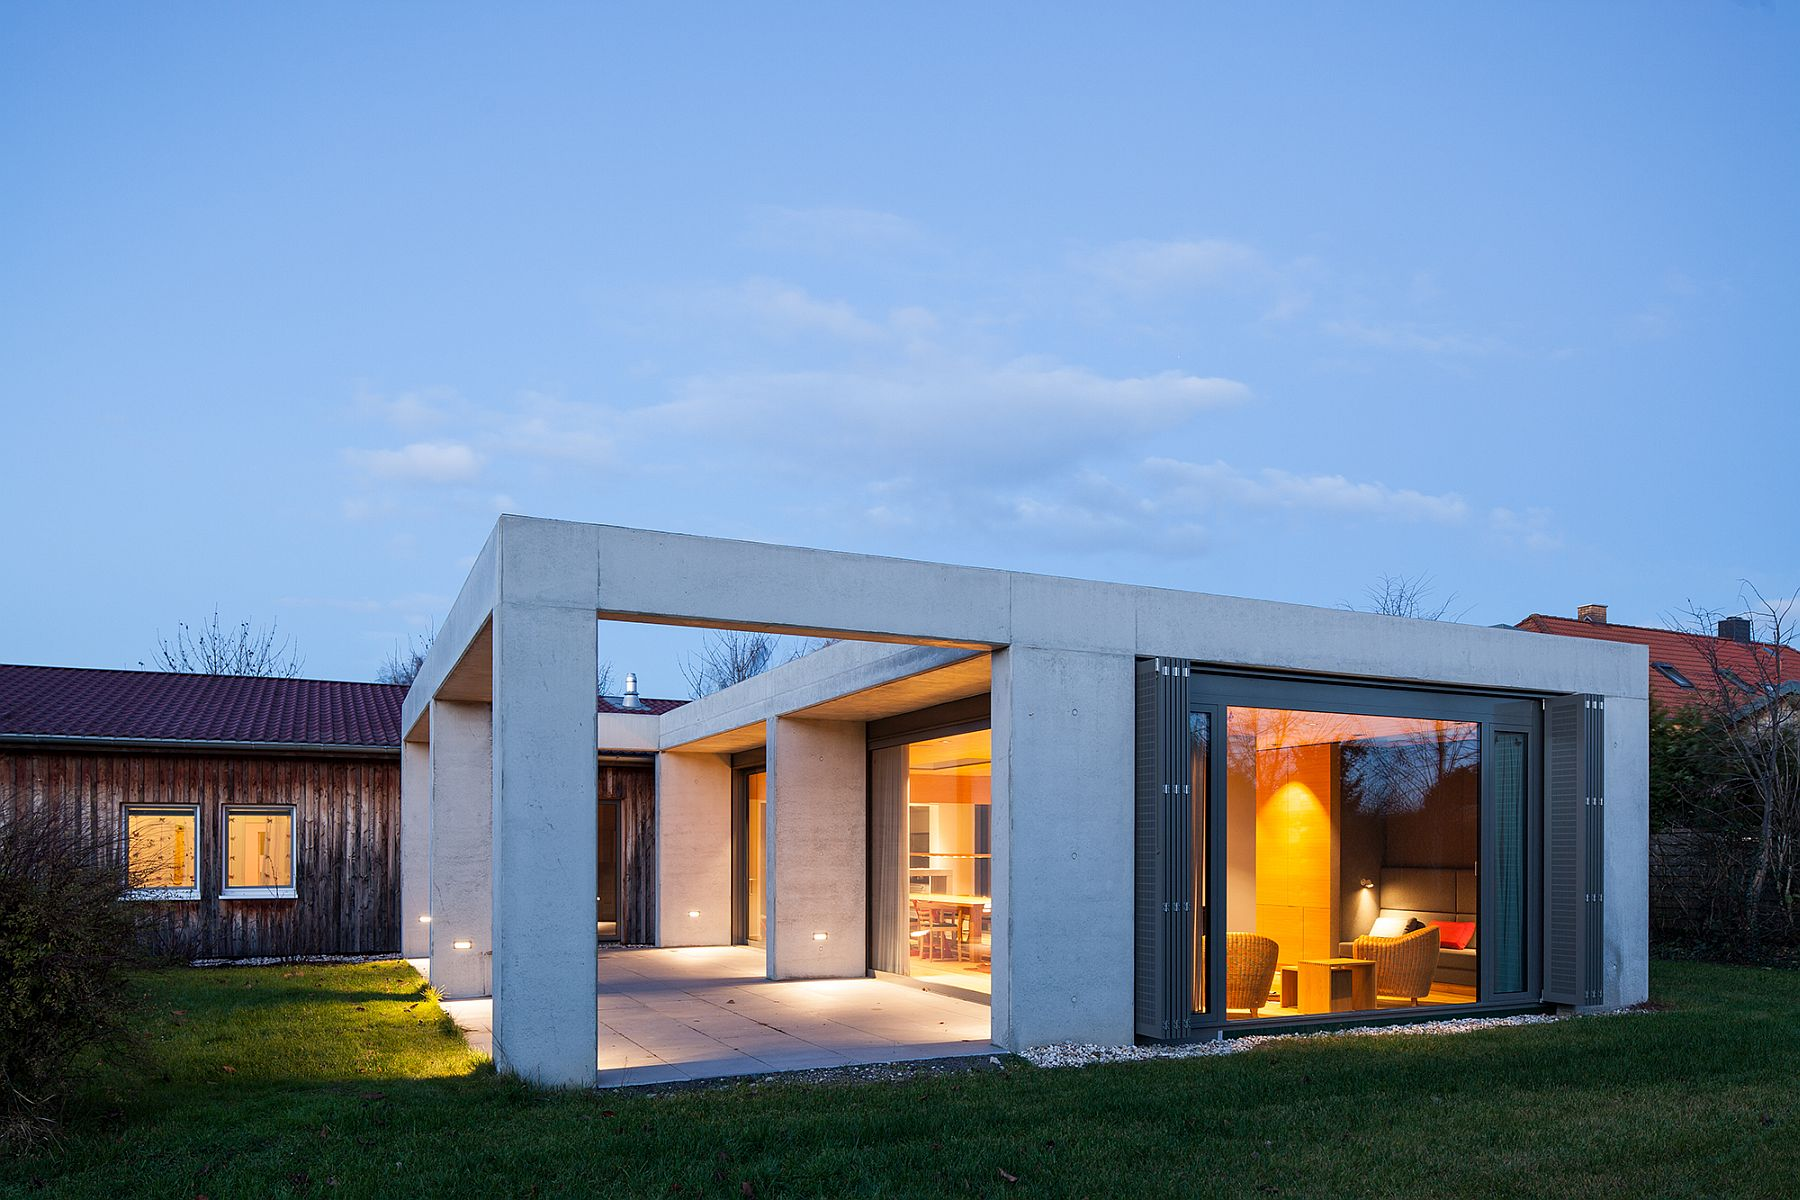 Contemporary concrete extension stands in contrast to the original timber home